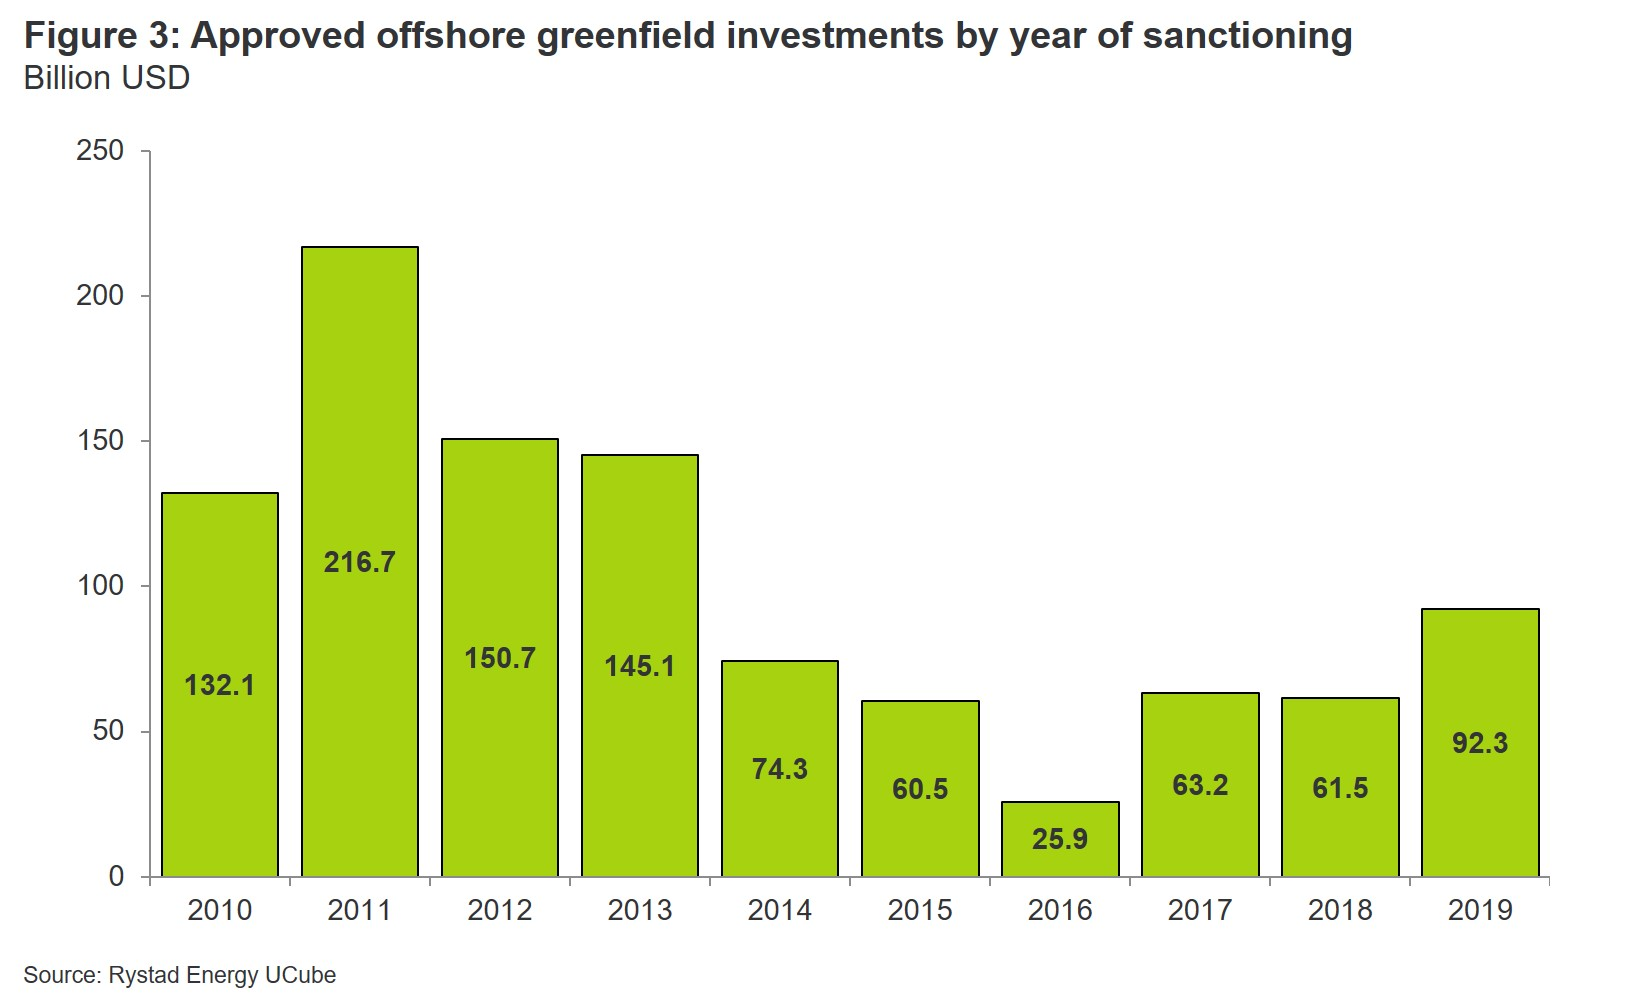 Chart showing approved offshore greenfield investments by year of sanctioning from 2010 to 2019